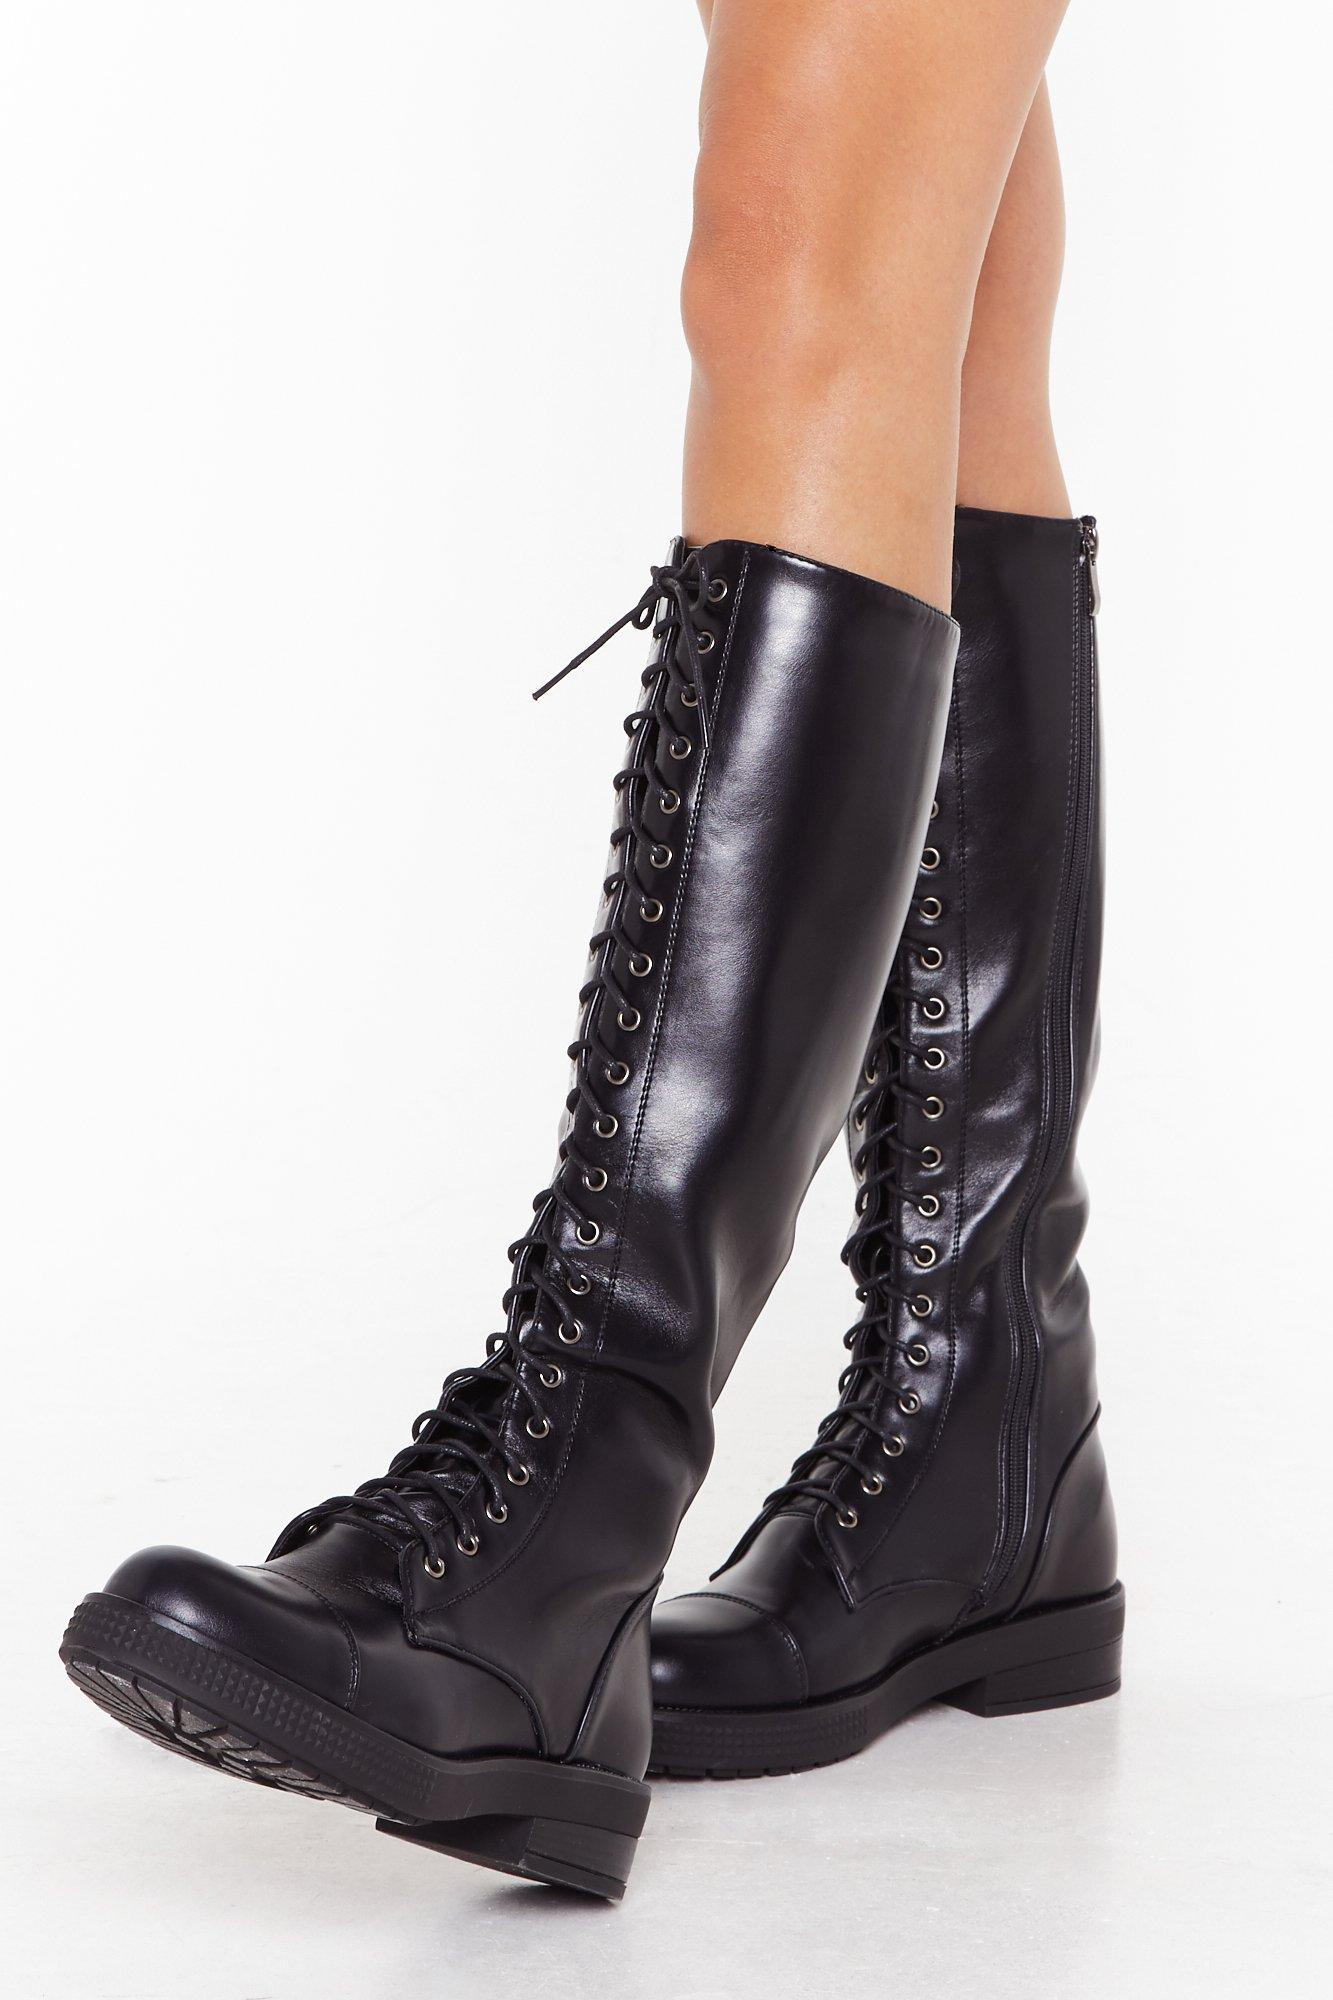 Knee High Lace Up Boots Black High